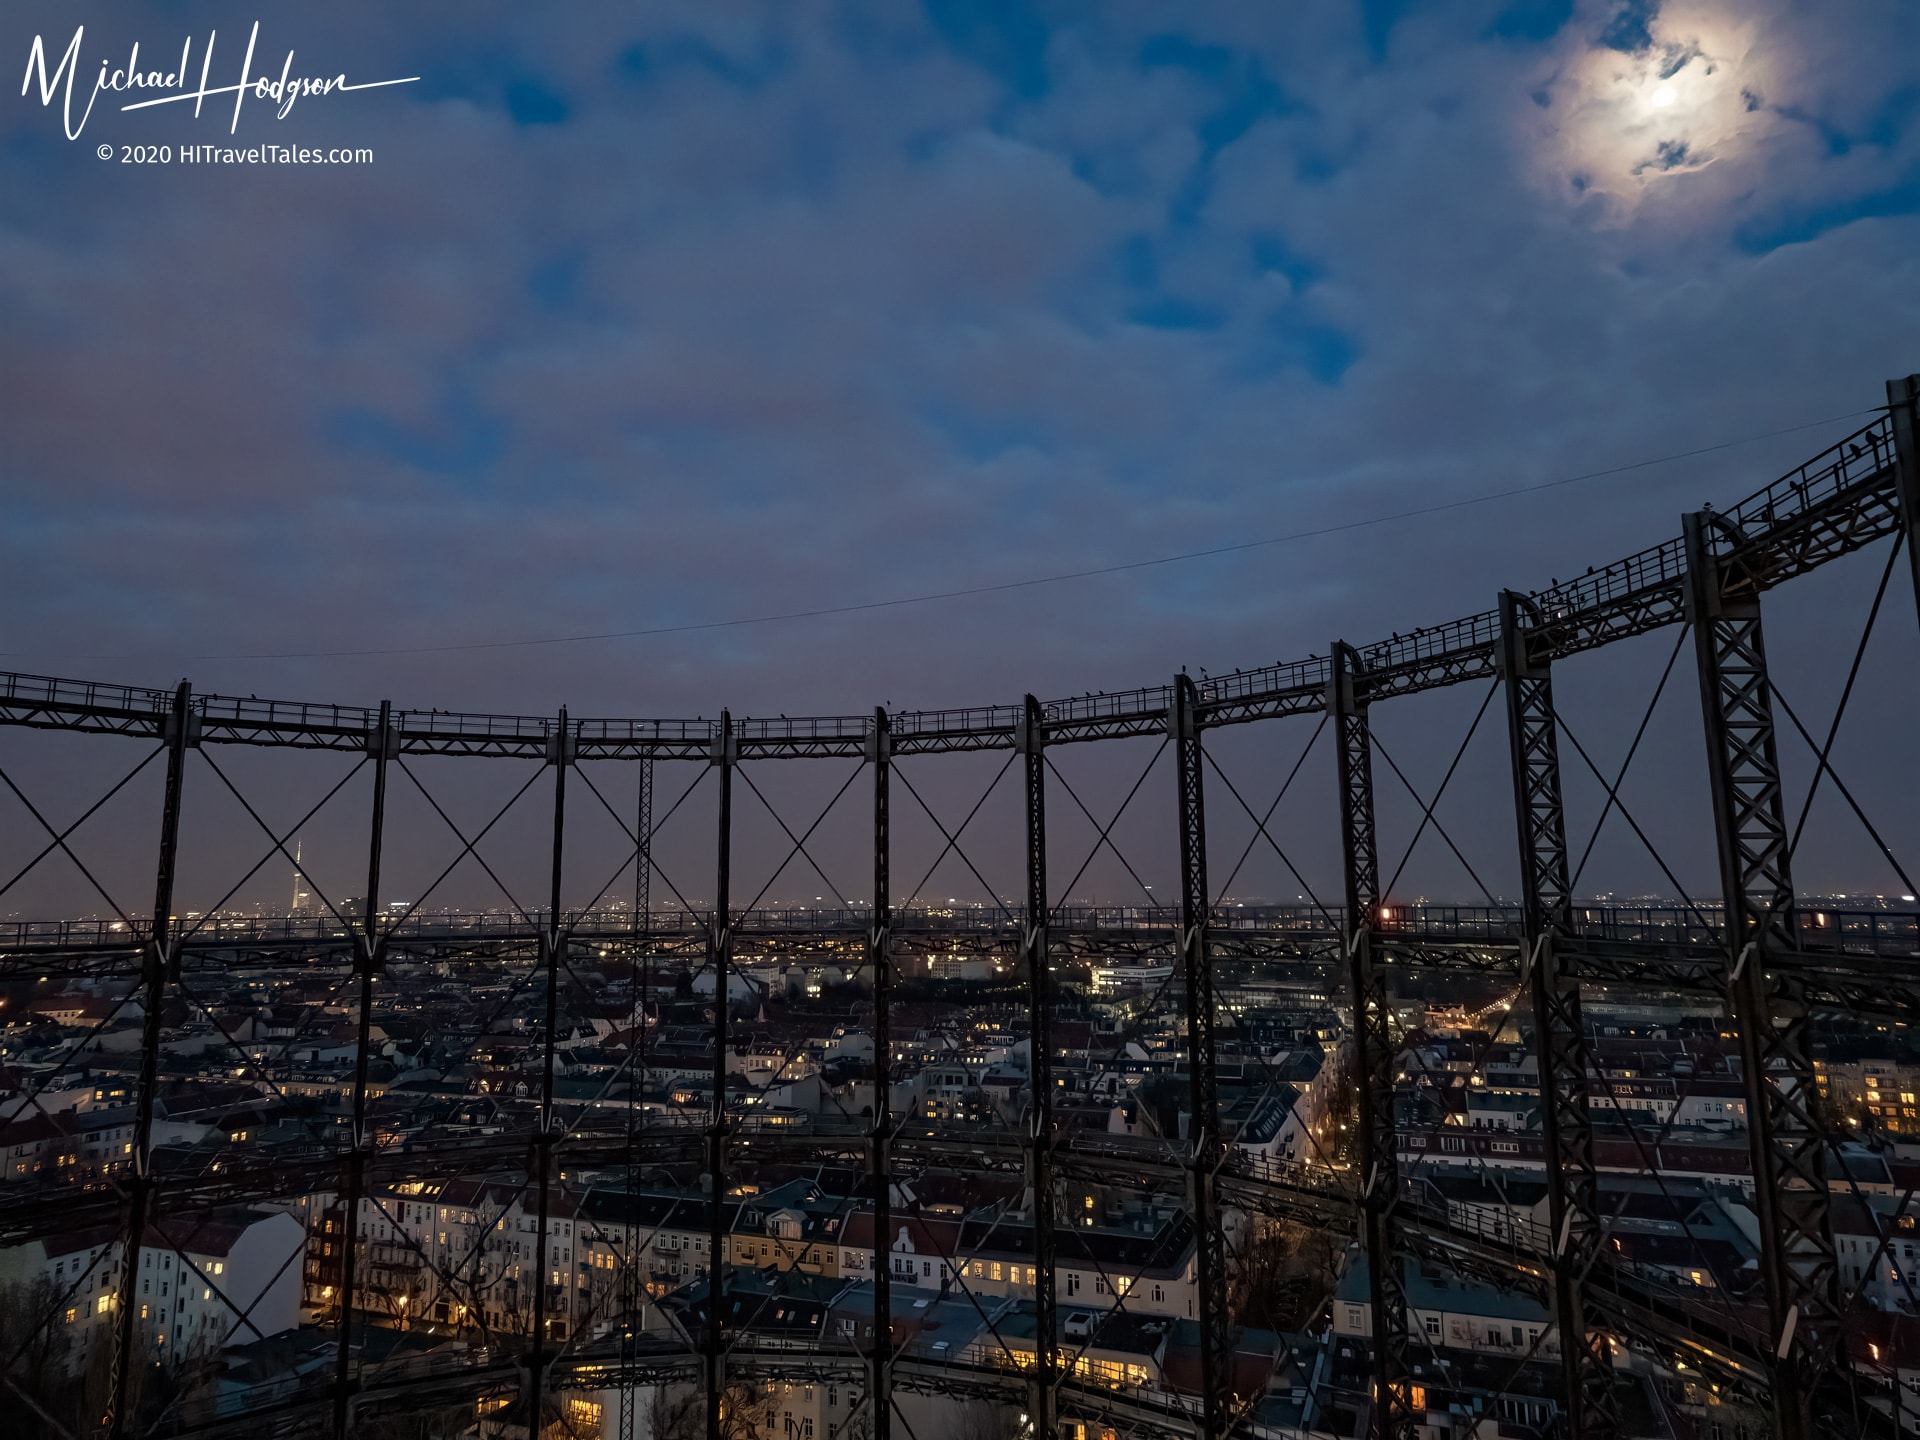 The Berlin gasometer under a full moon